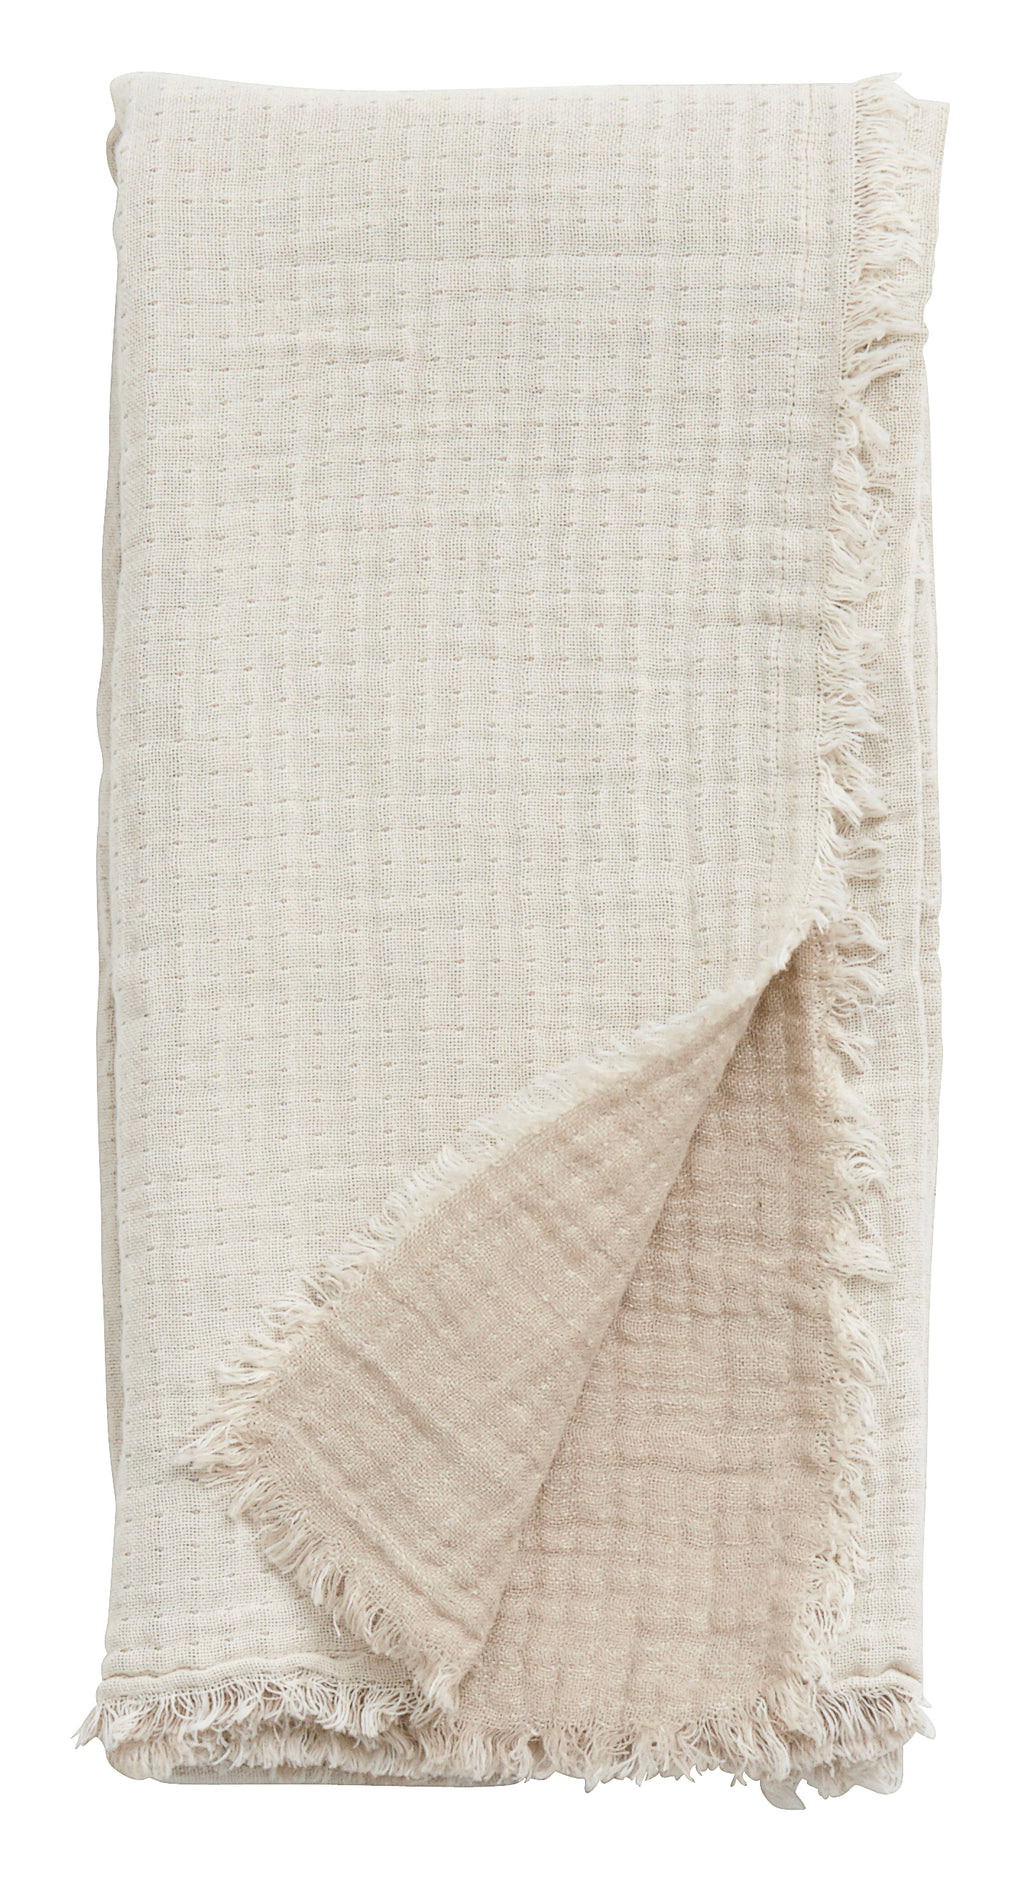 Cotton Shawl Off White/Beige